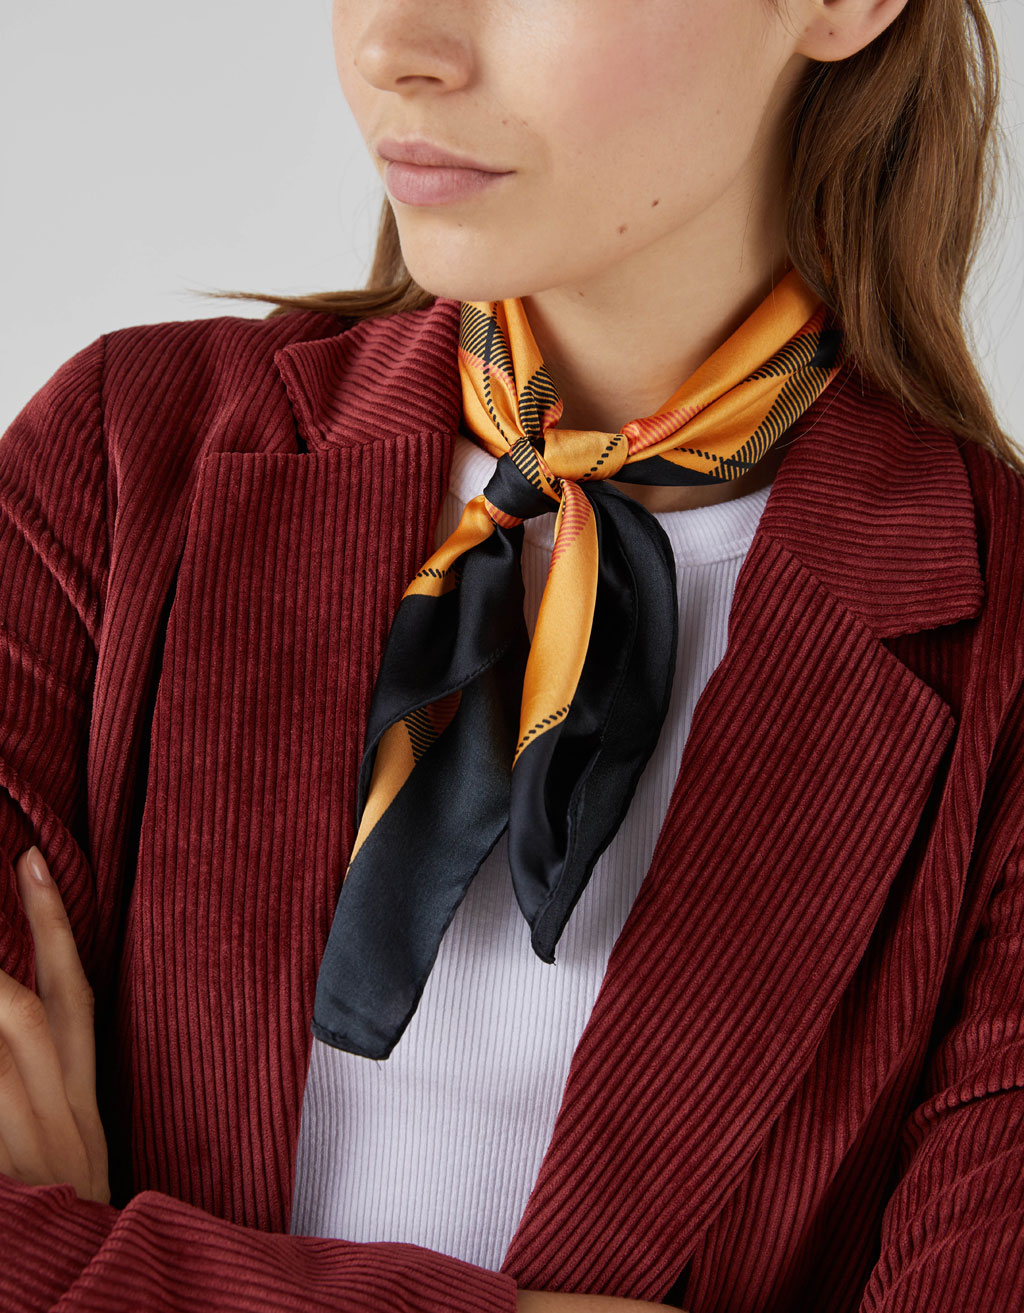 Bandana neckerchief